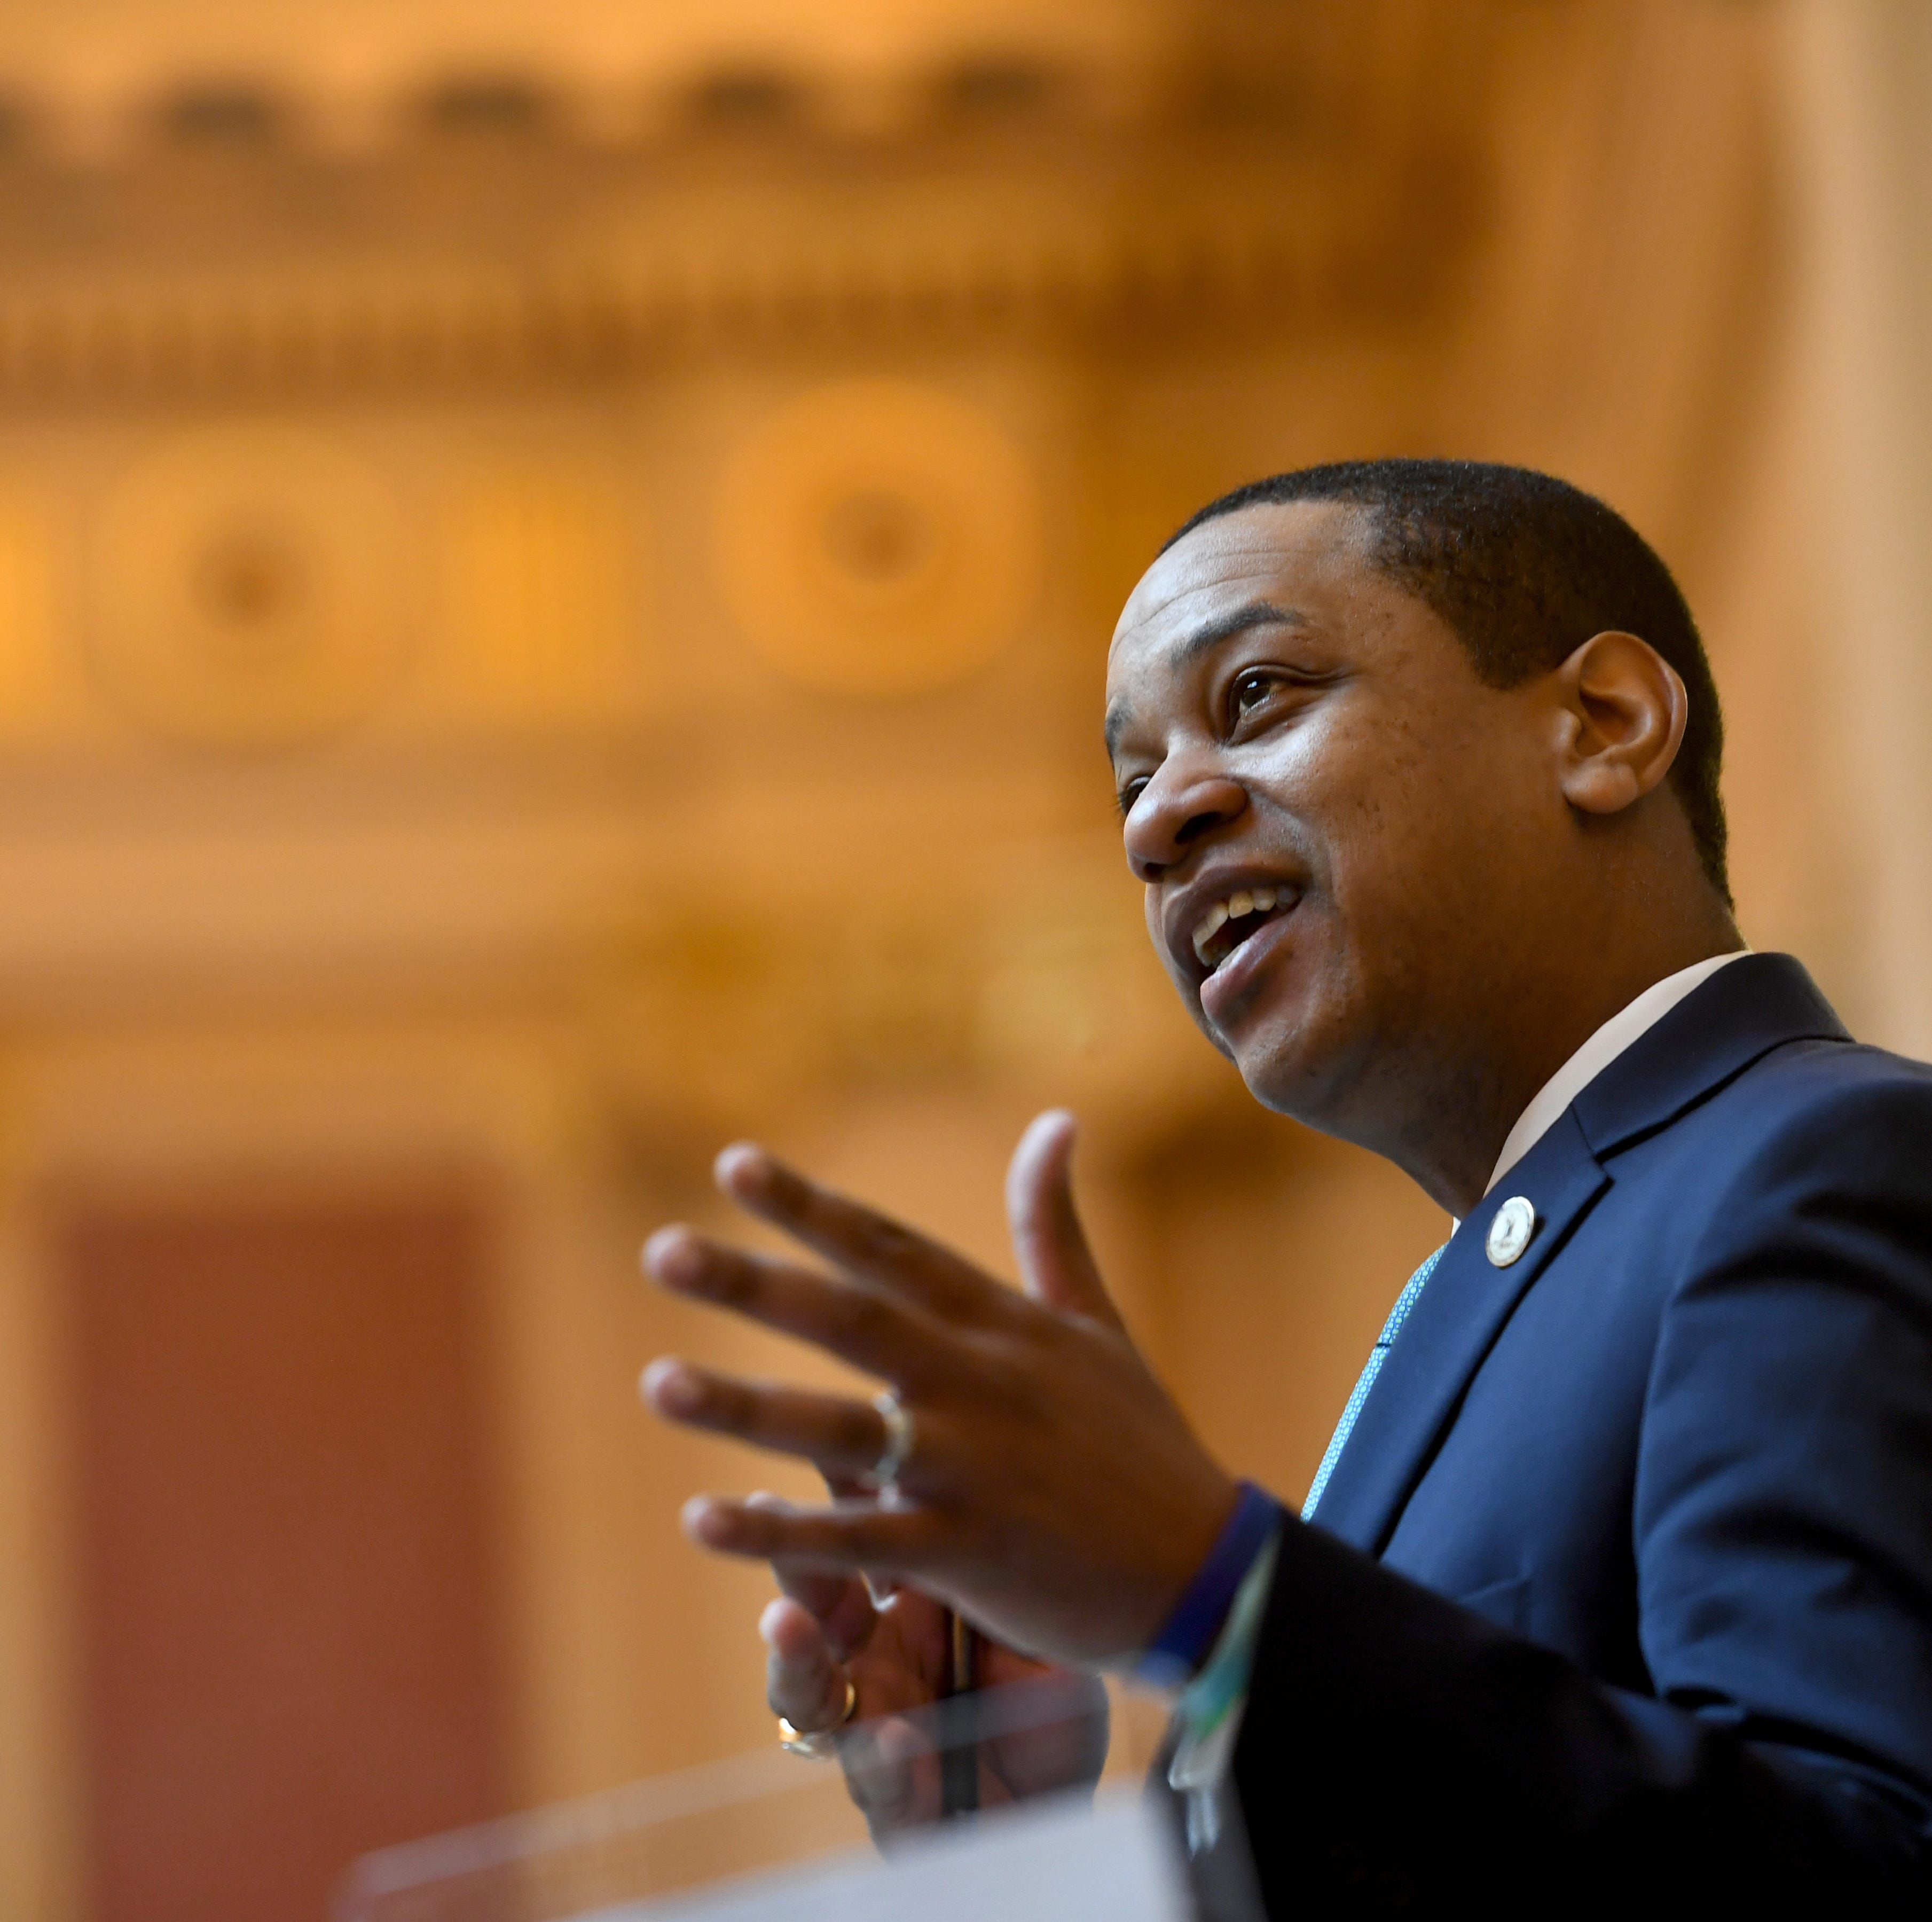 Virginia Republicans to invite Fairfax's accusers to testify publicly